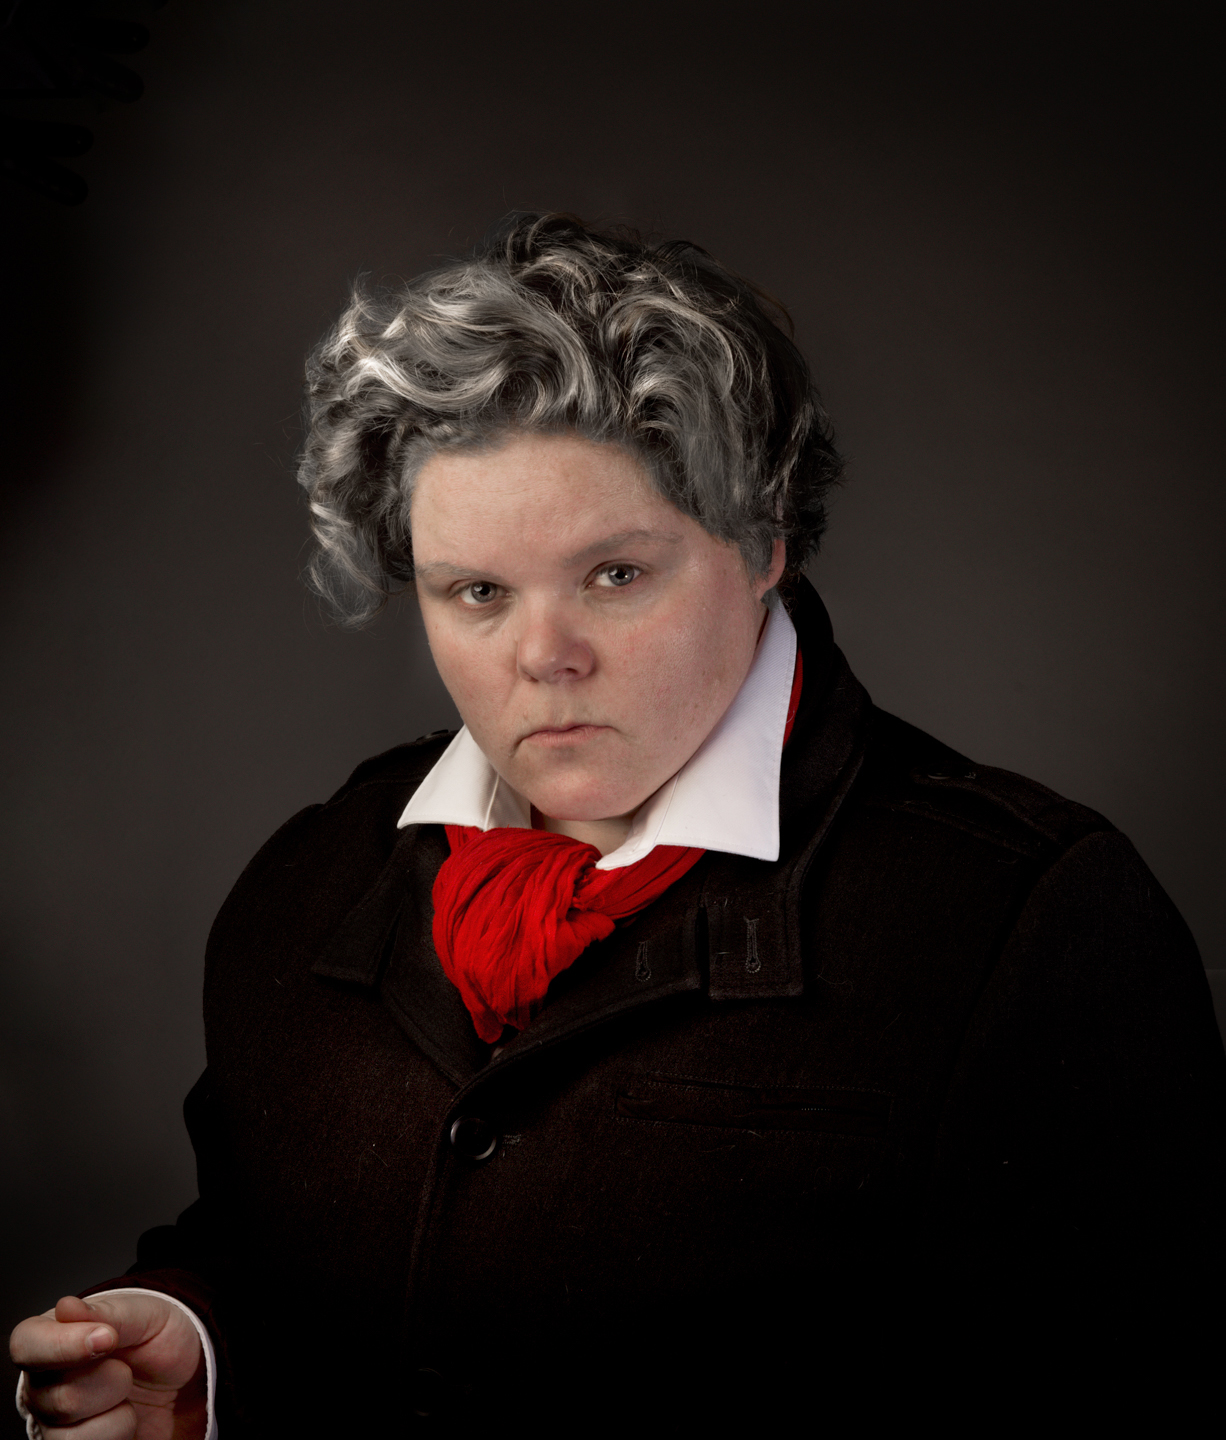 Self Portrait as Beethoven. Part of Queering the Renaissance Photo Series